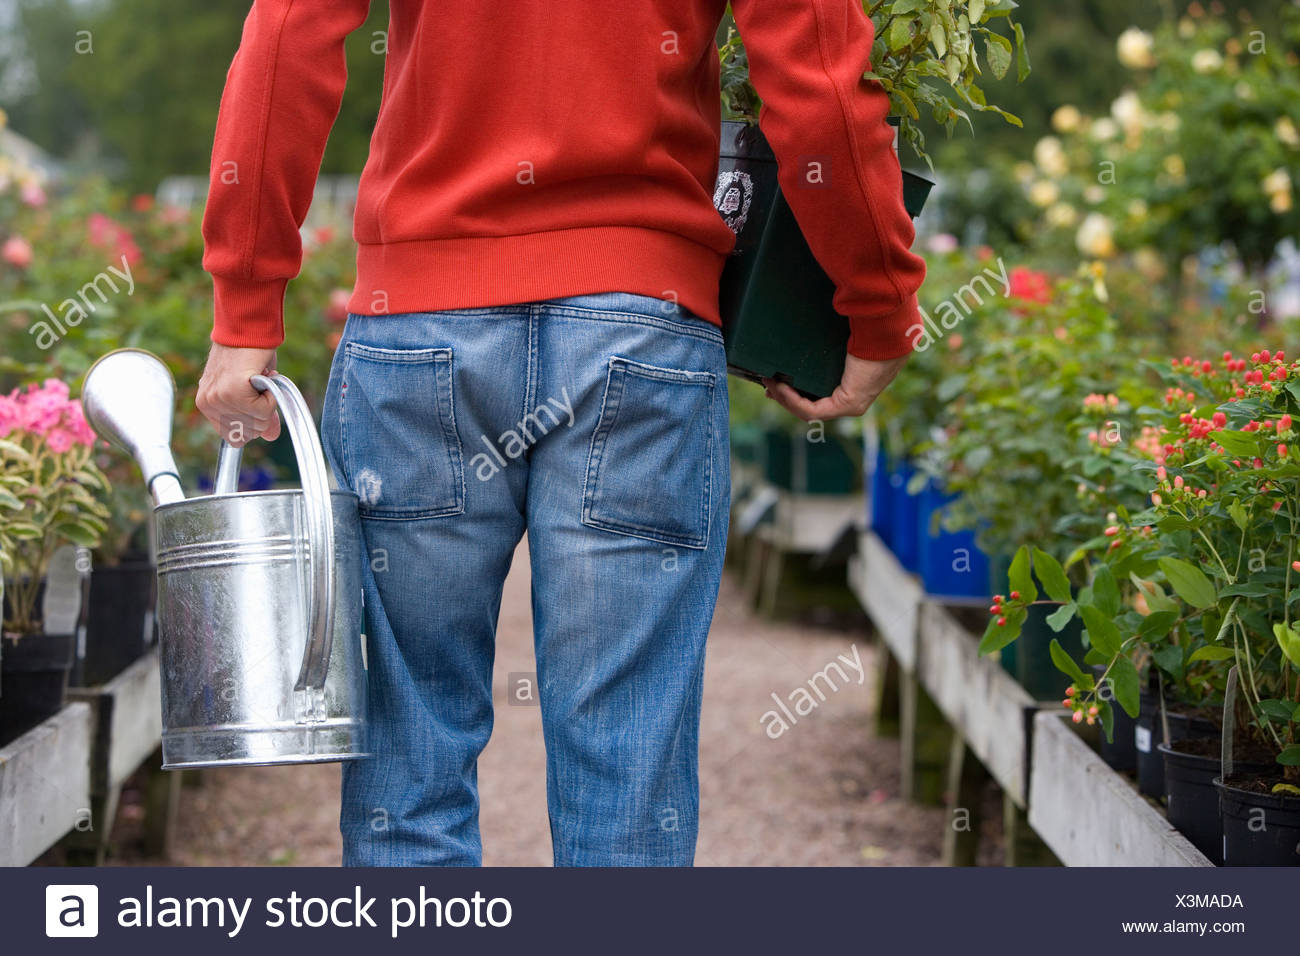 Man in nursery with watering can and plant, rear view - Stock Image